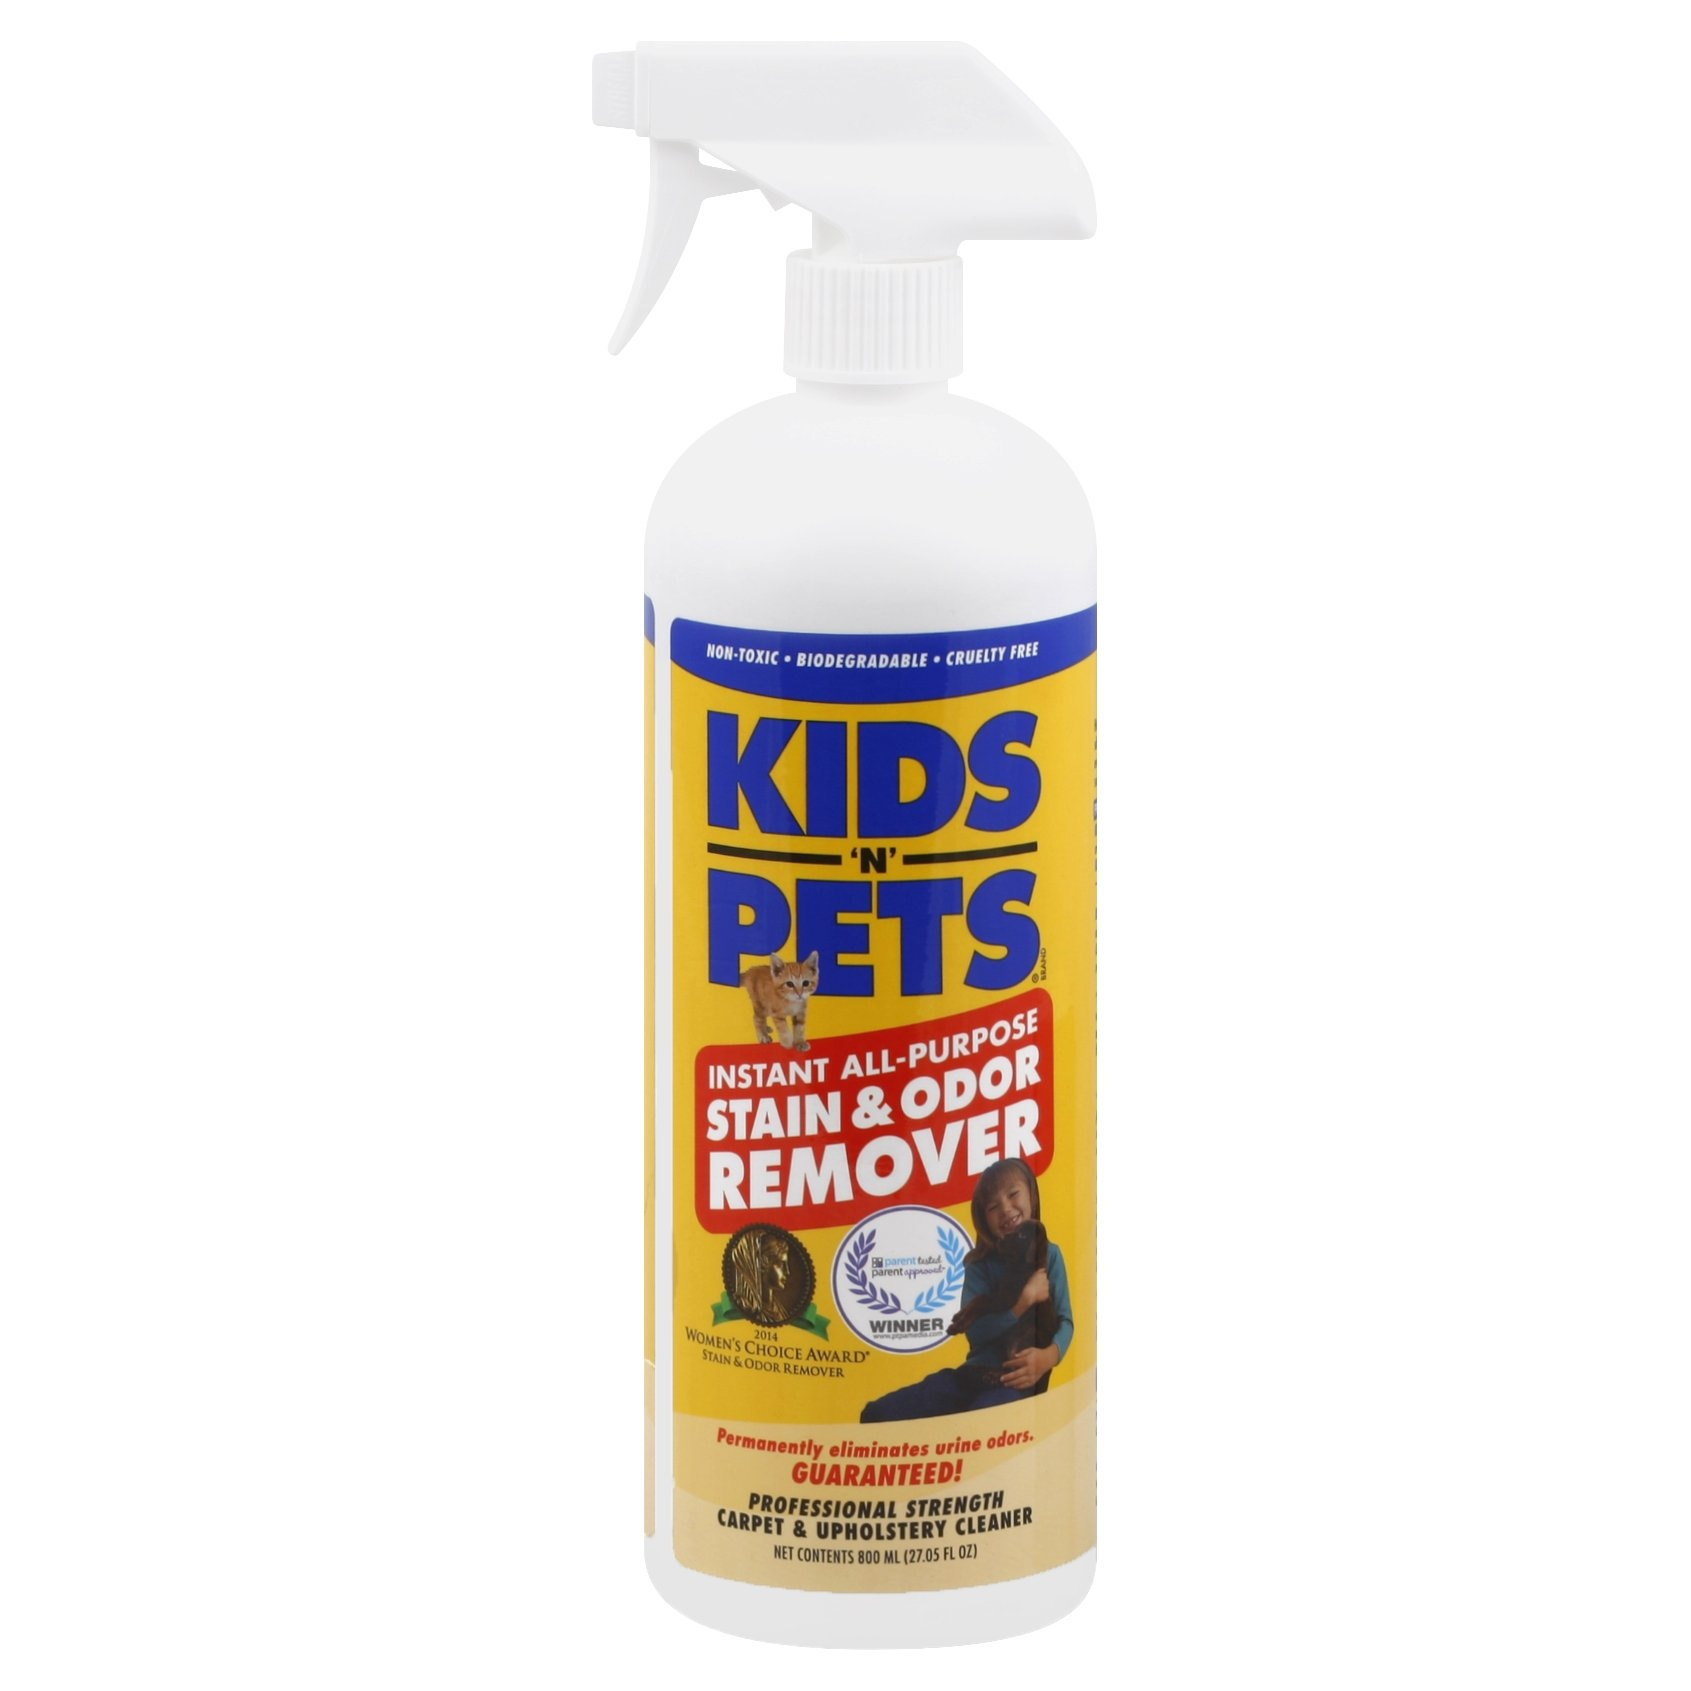 slide 1 of 1, Kids 'N' Pets Instant All Purpose Stain & Odor Remover,